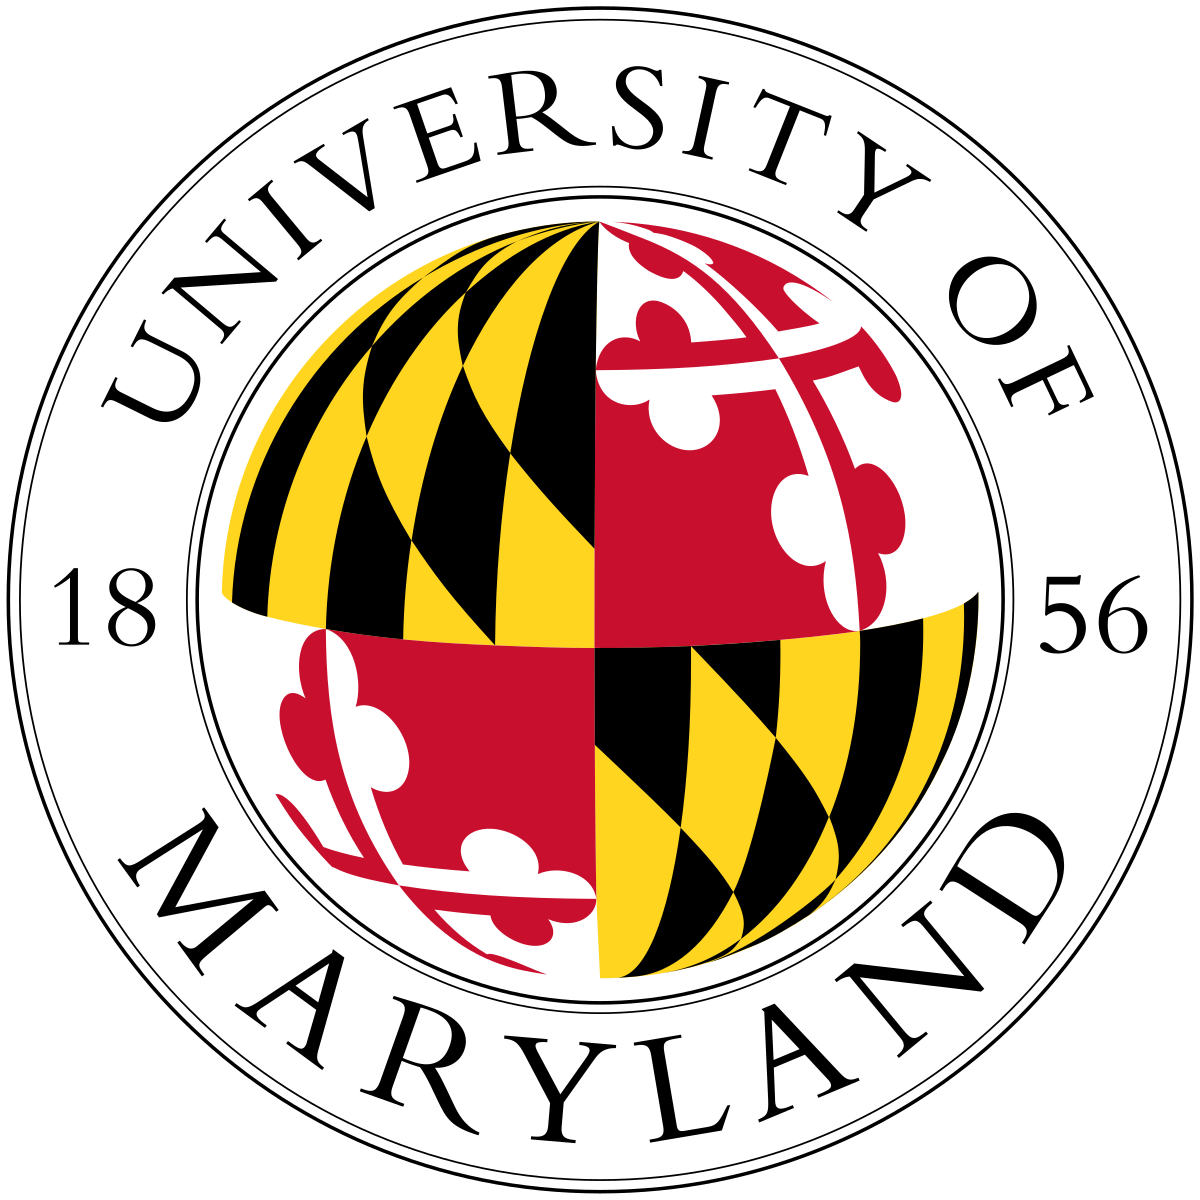 Univ Maryland USA.png